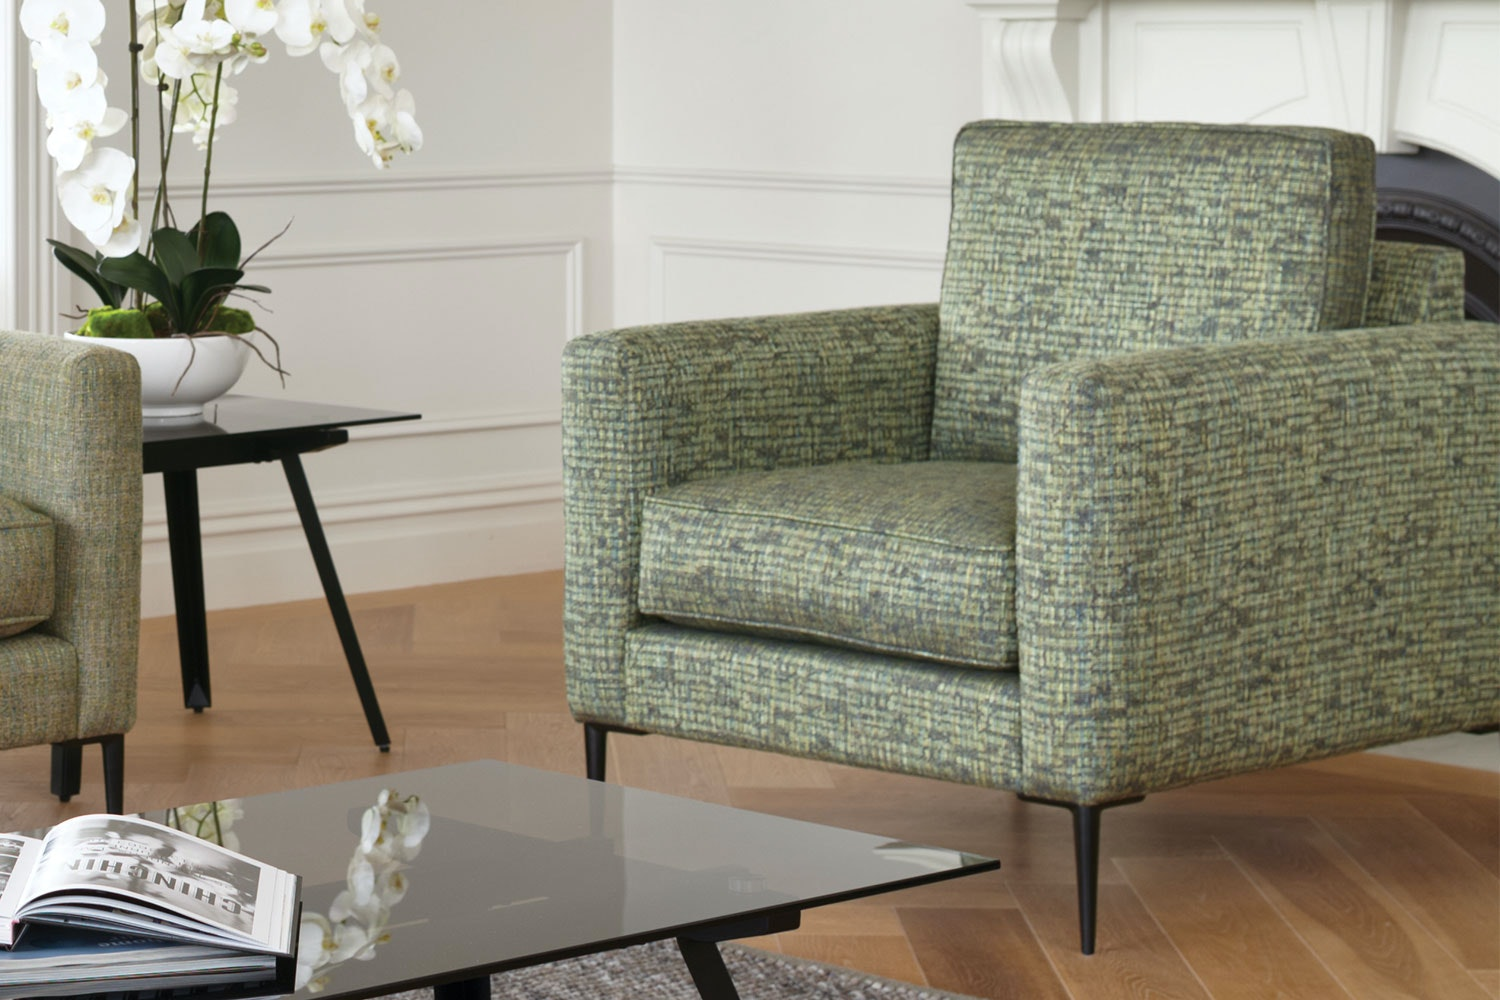 Oakland Fabric Chair by Evan John Philp